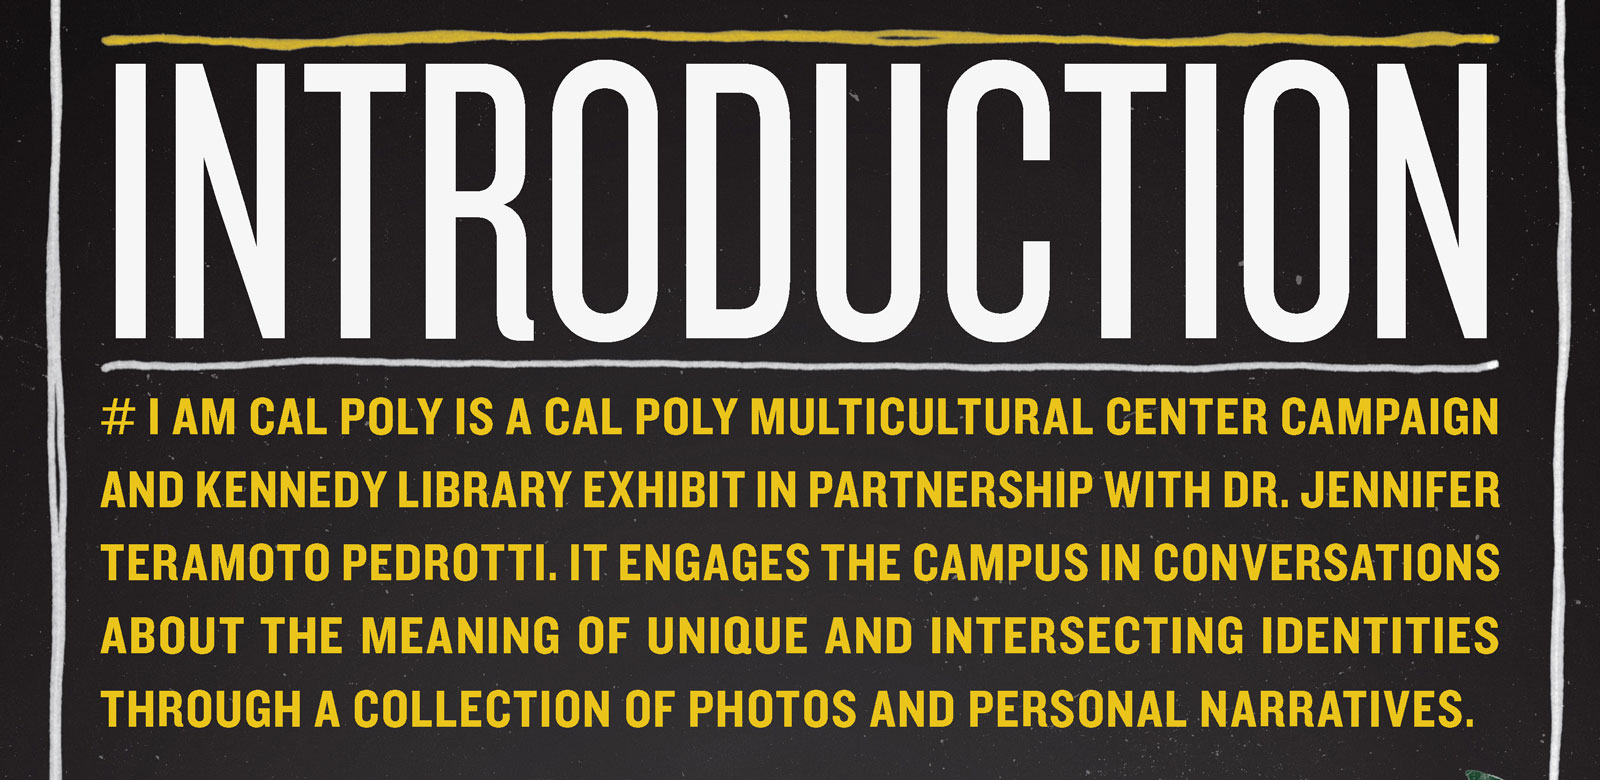 # I Am Cal Poly  engages the campus in conversations about the meaning of unique and intersecting identities through a collection of photos and personal narratives.